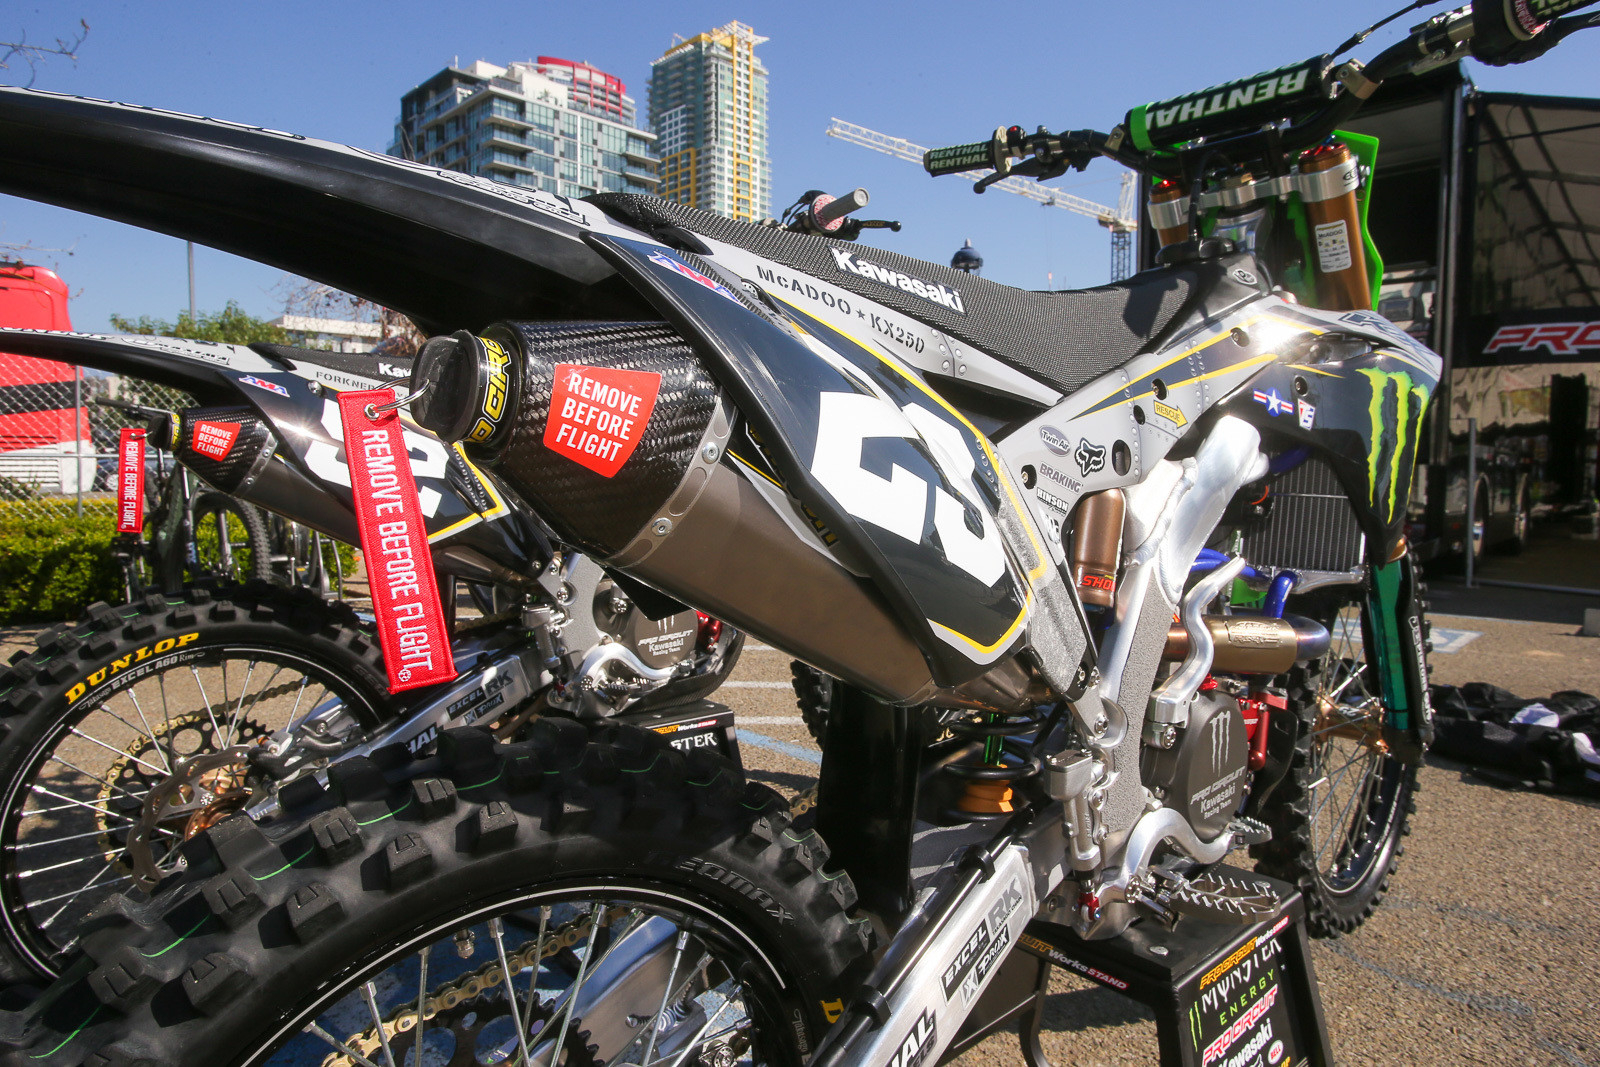 Monster Energy Pro Circuit Kawasaki knocked it out of the park with their design. The steel plate look on the graphics had a bunch of other nice touches, including the Remove Before Flight exhaust plug.